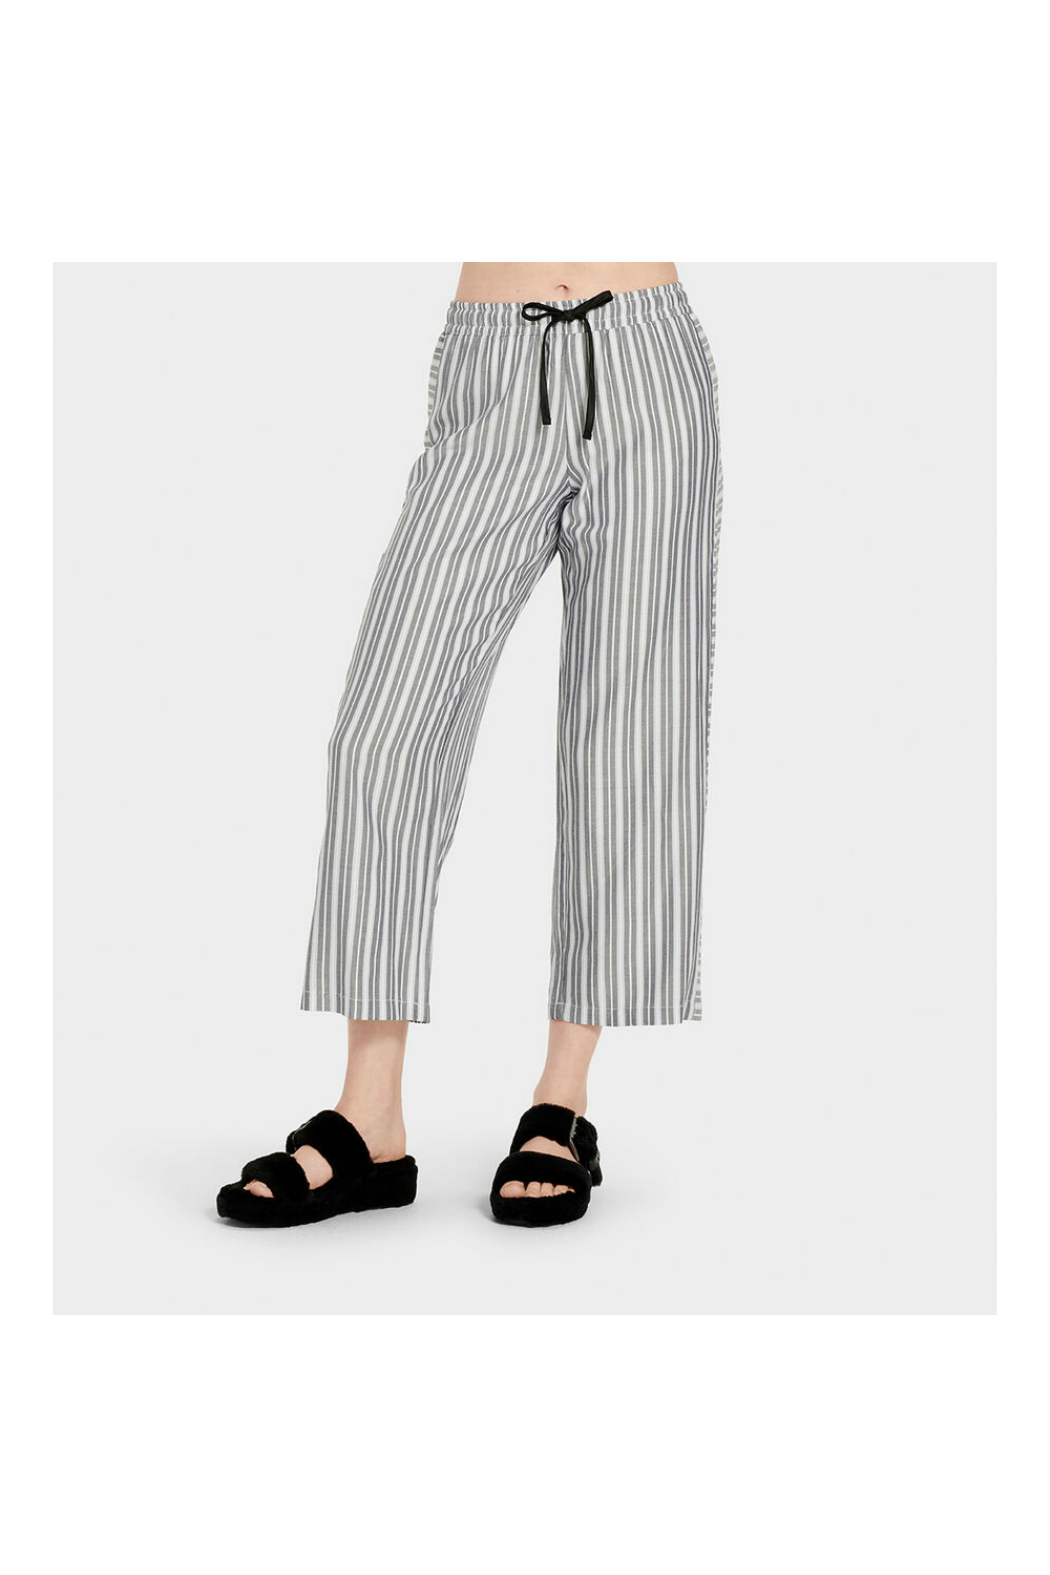 Ugg KATHARINE PJ SET STRIPE - Side Cropped Image